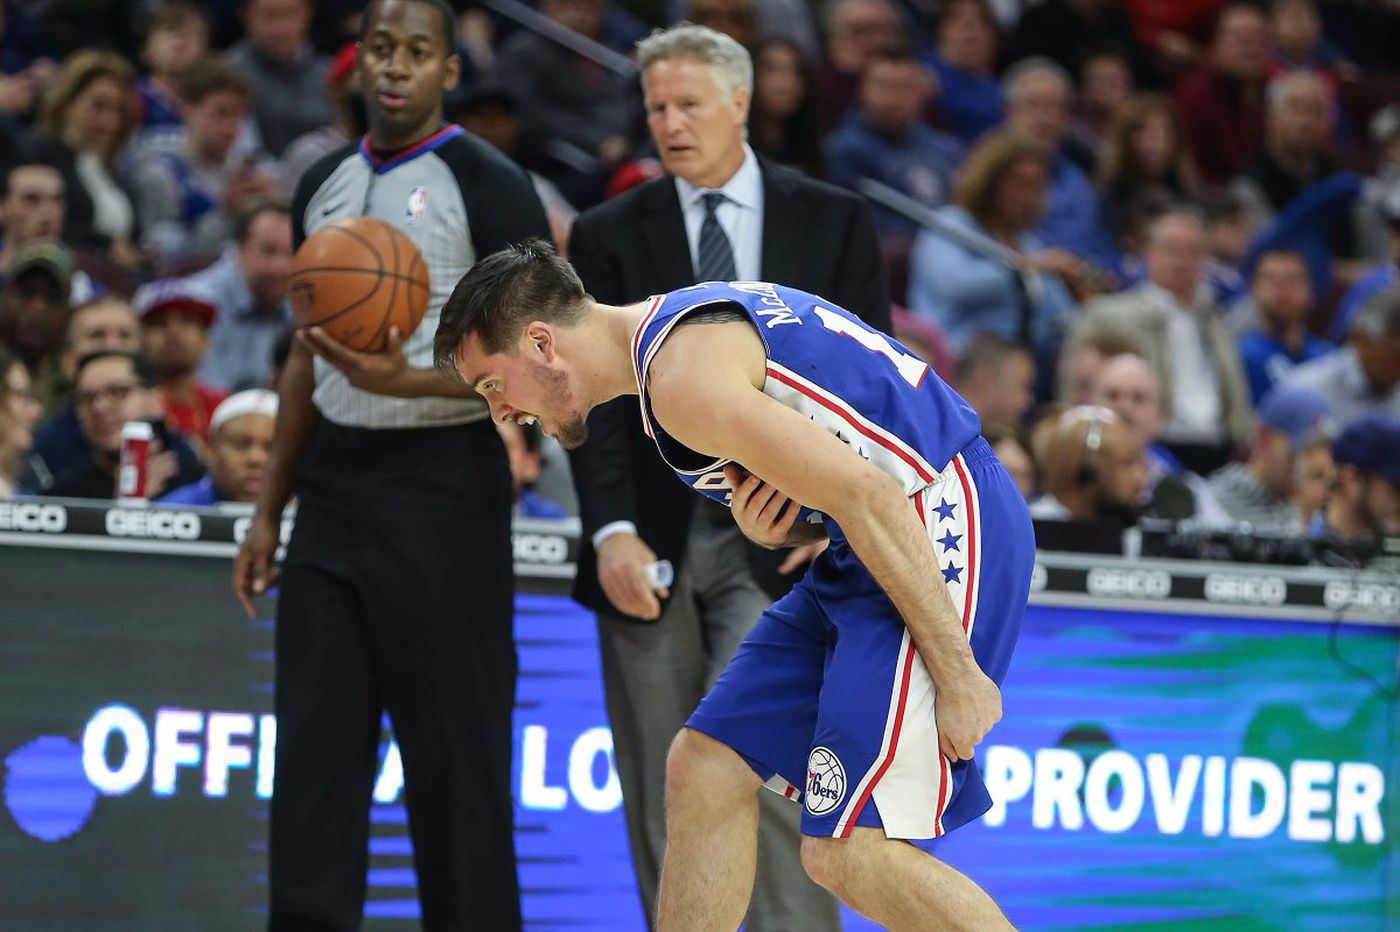 Sixers-Celtics preview: Trying to win without Joel Embiid, T.J. McConnell